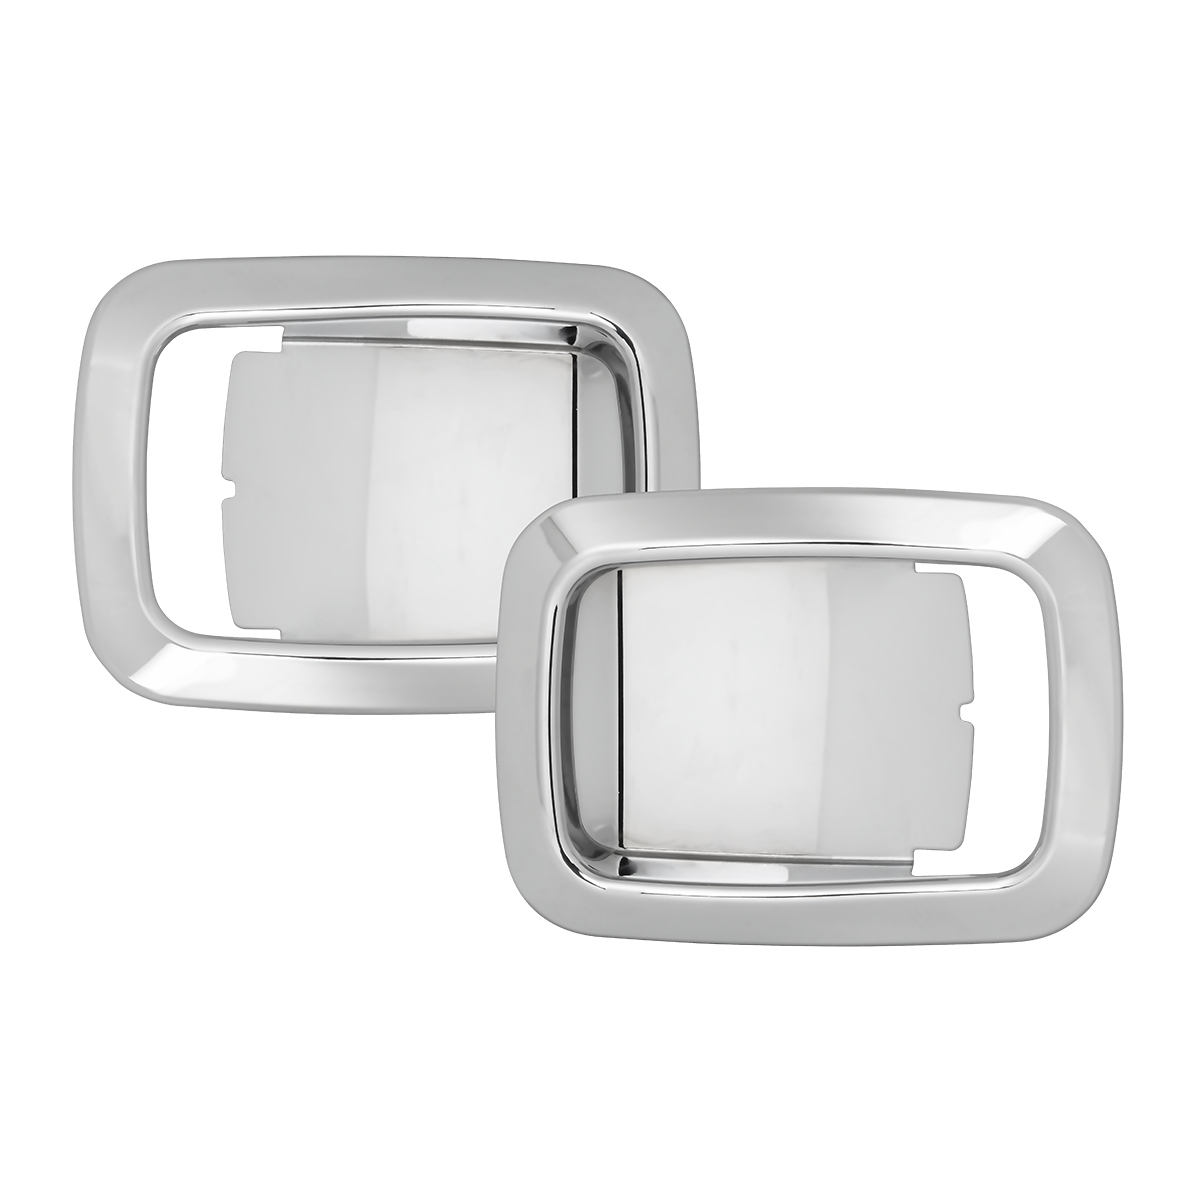 52004 Interior Daylight Door Handle Covers for Kenworth W